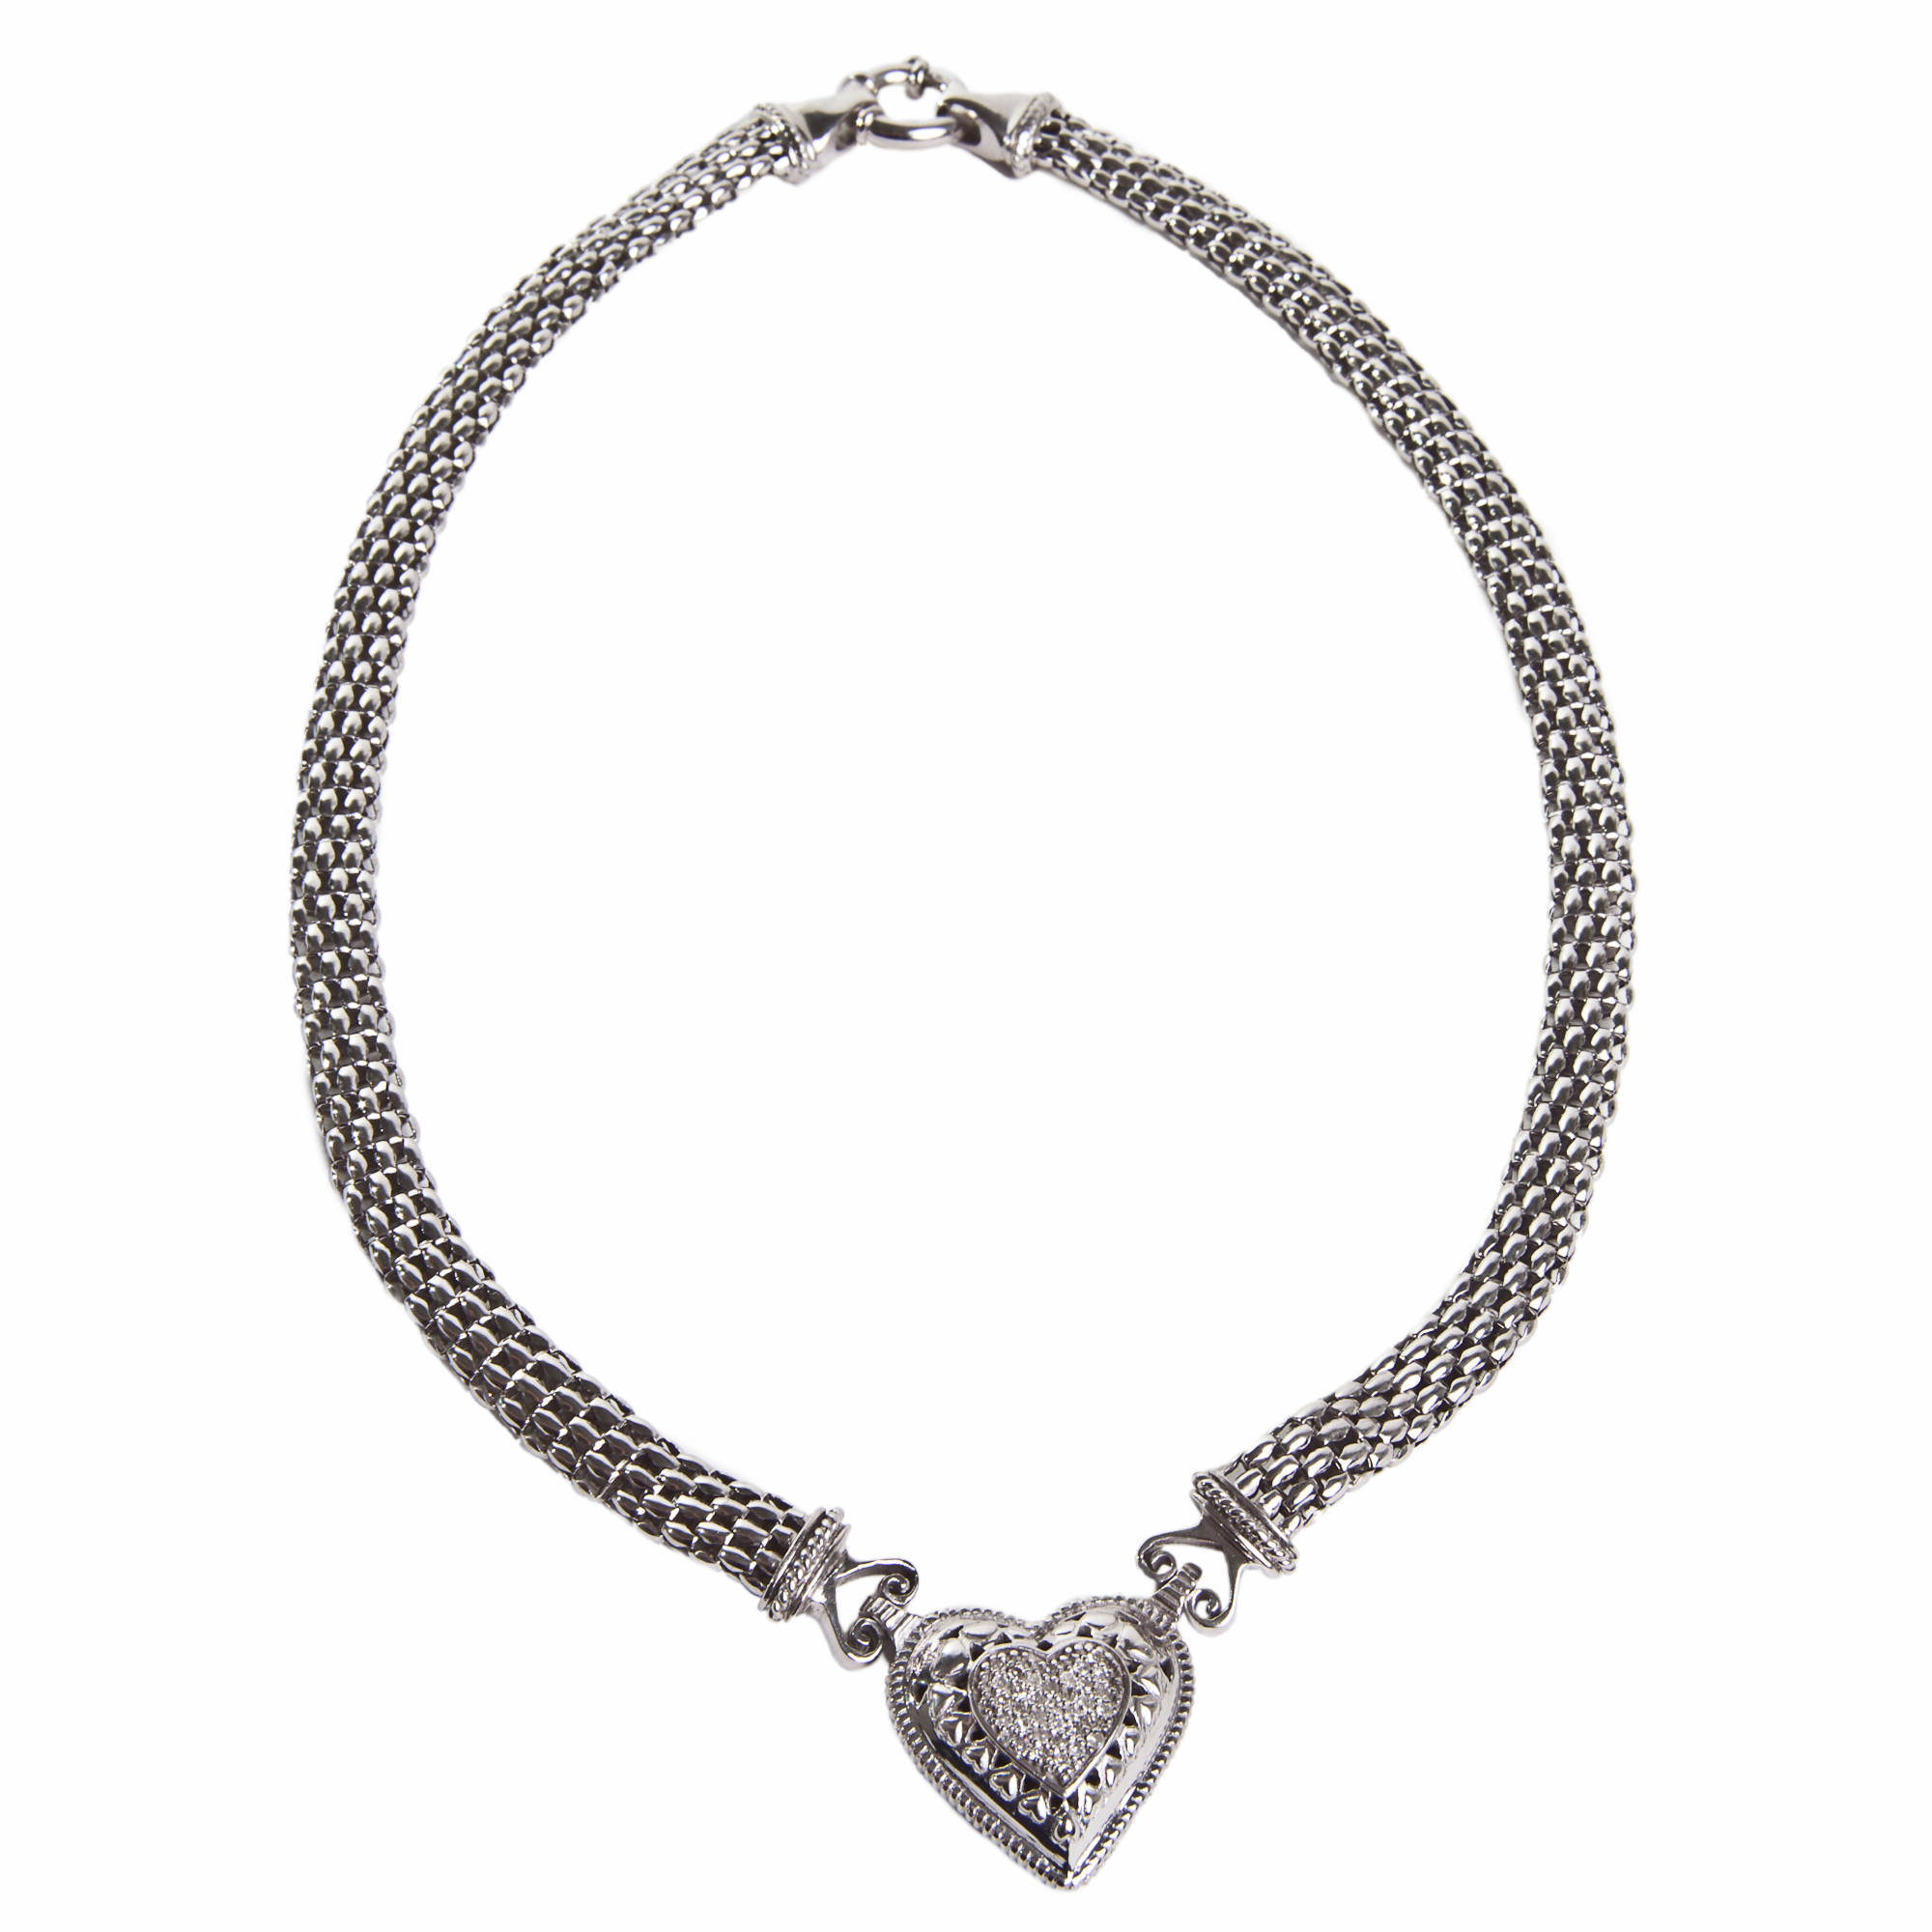 jryx lafayette mesh york fog signature new necklace